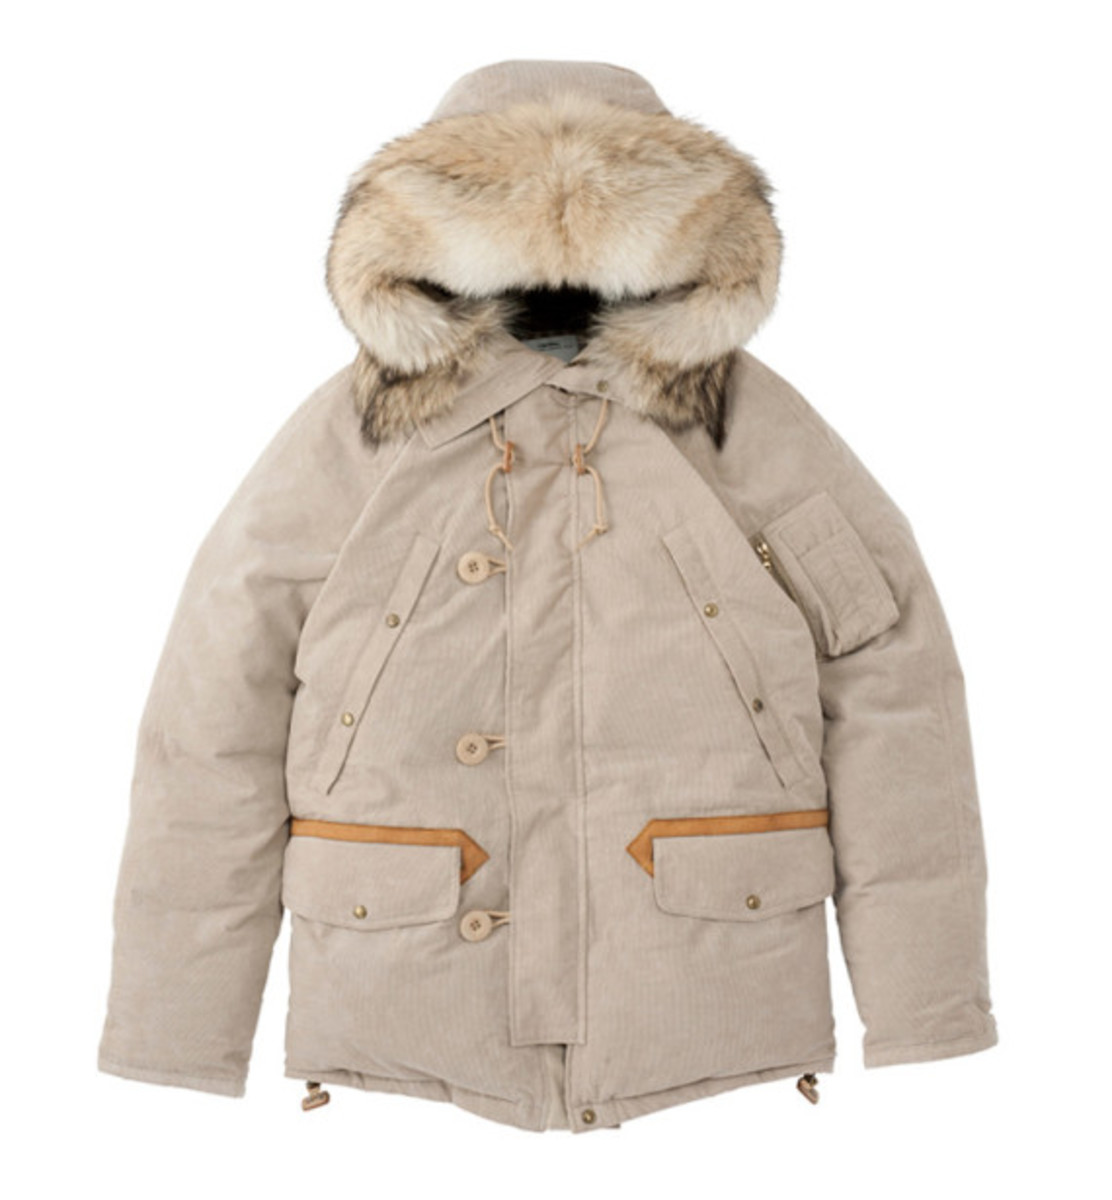 visvim-valdez-down-jacket-2l-05